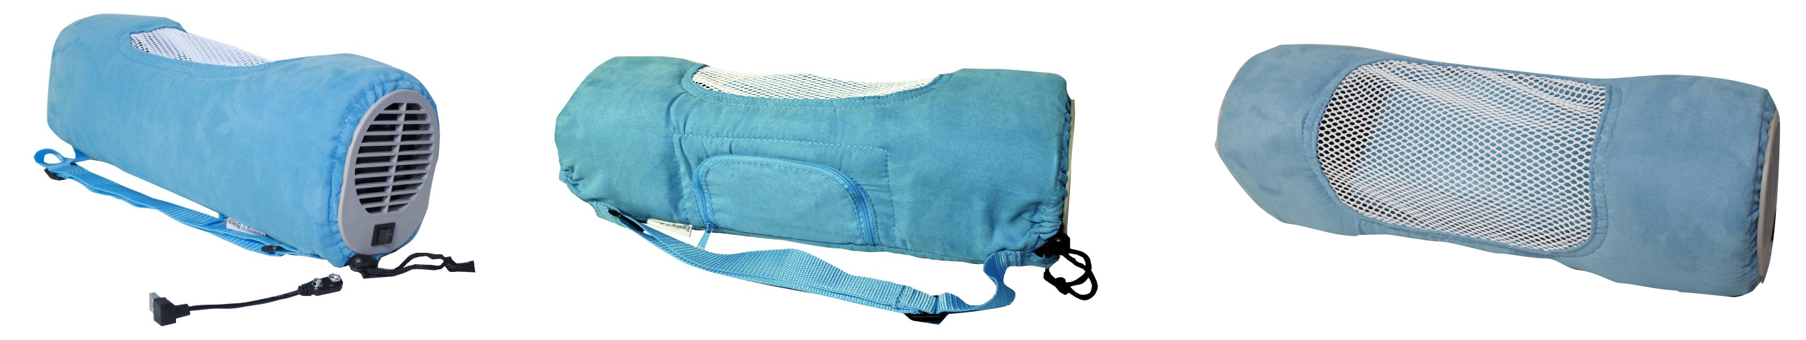 cooling pillow for menopause and hot flash relief